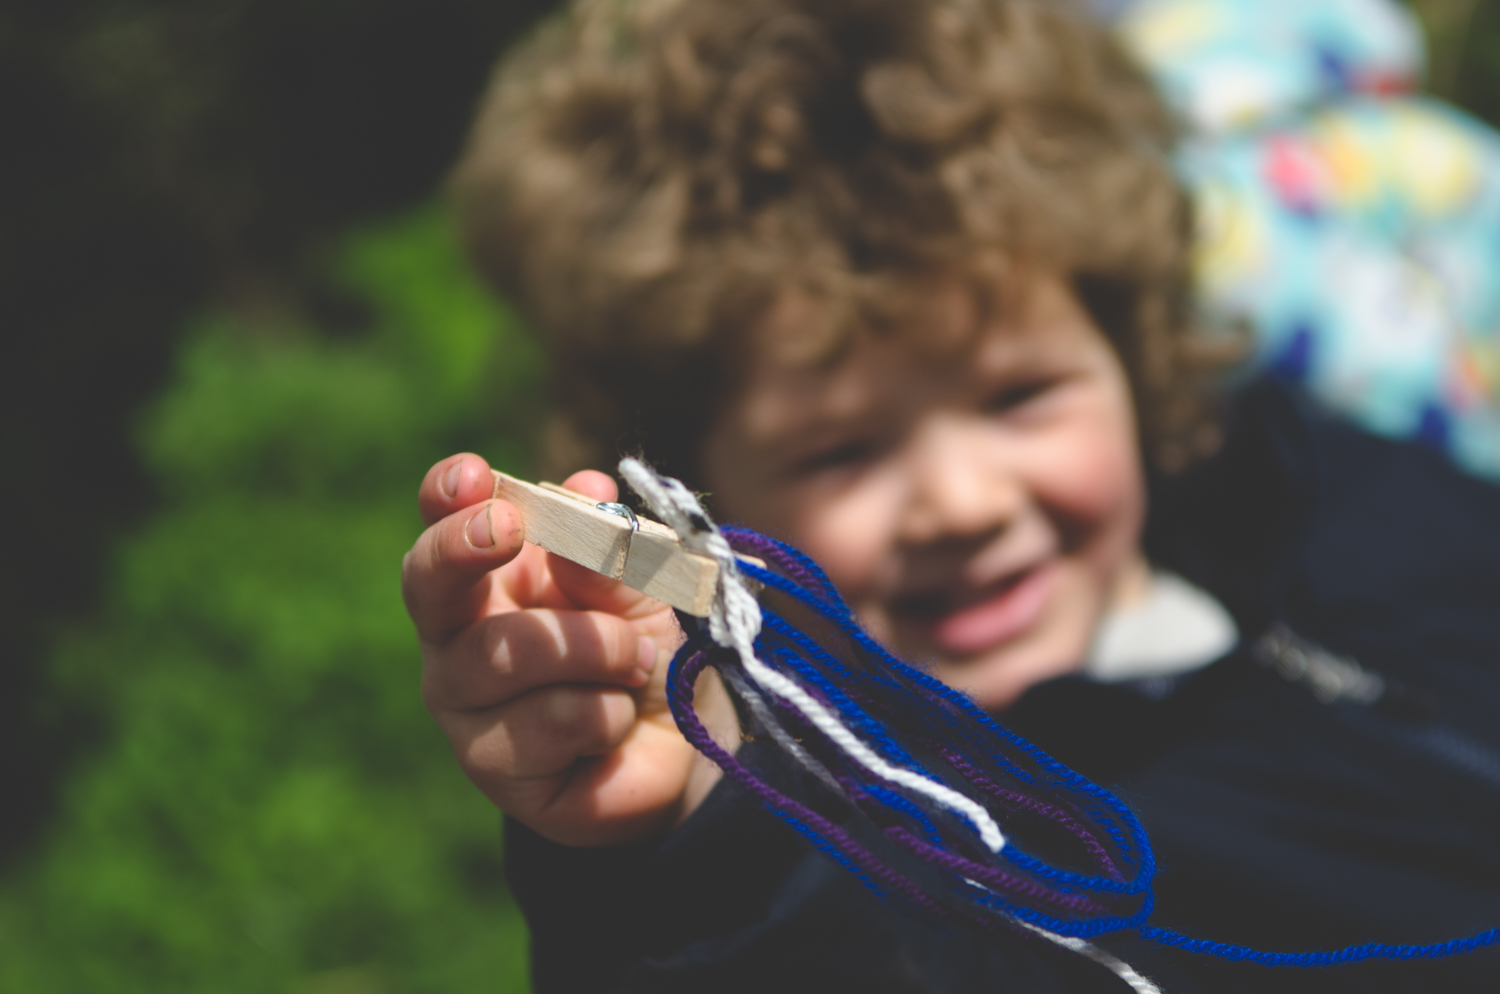 Patience & Persistence: Often a lack of fine motor skill development, married with the competition of the other 'birds' flapping nearbycaused fraught children to resort to using fingers, but it's all part of the child's own learning development.